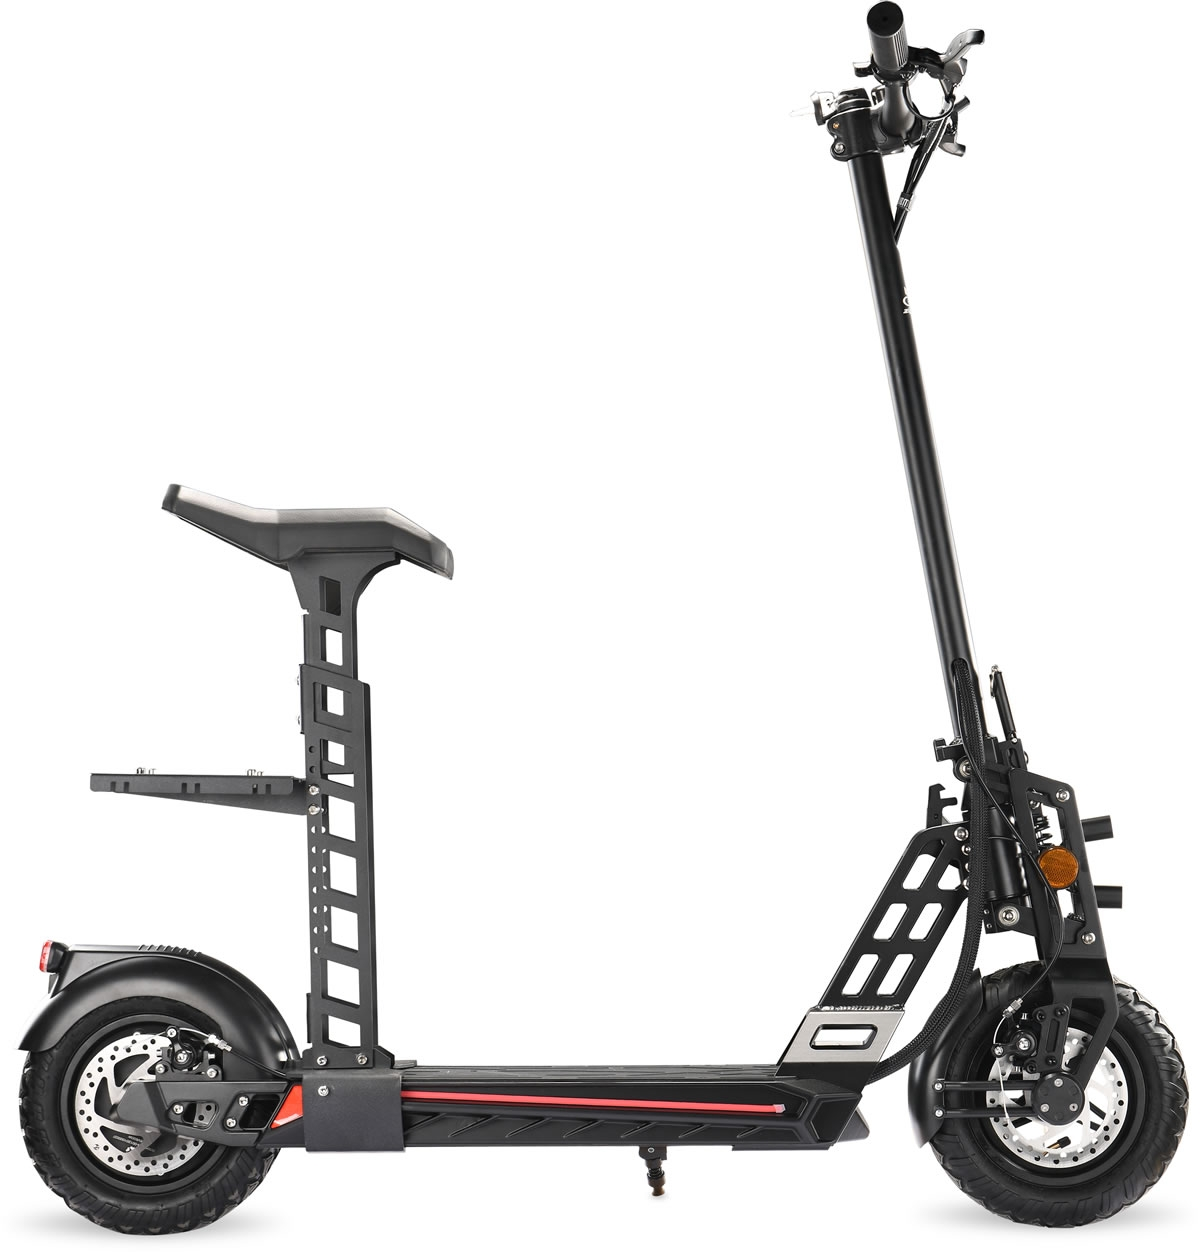 Highest spec scooter